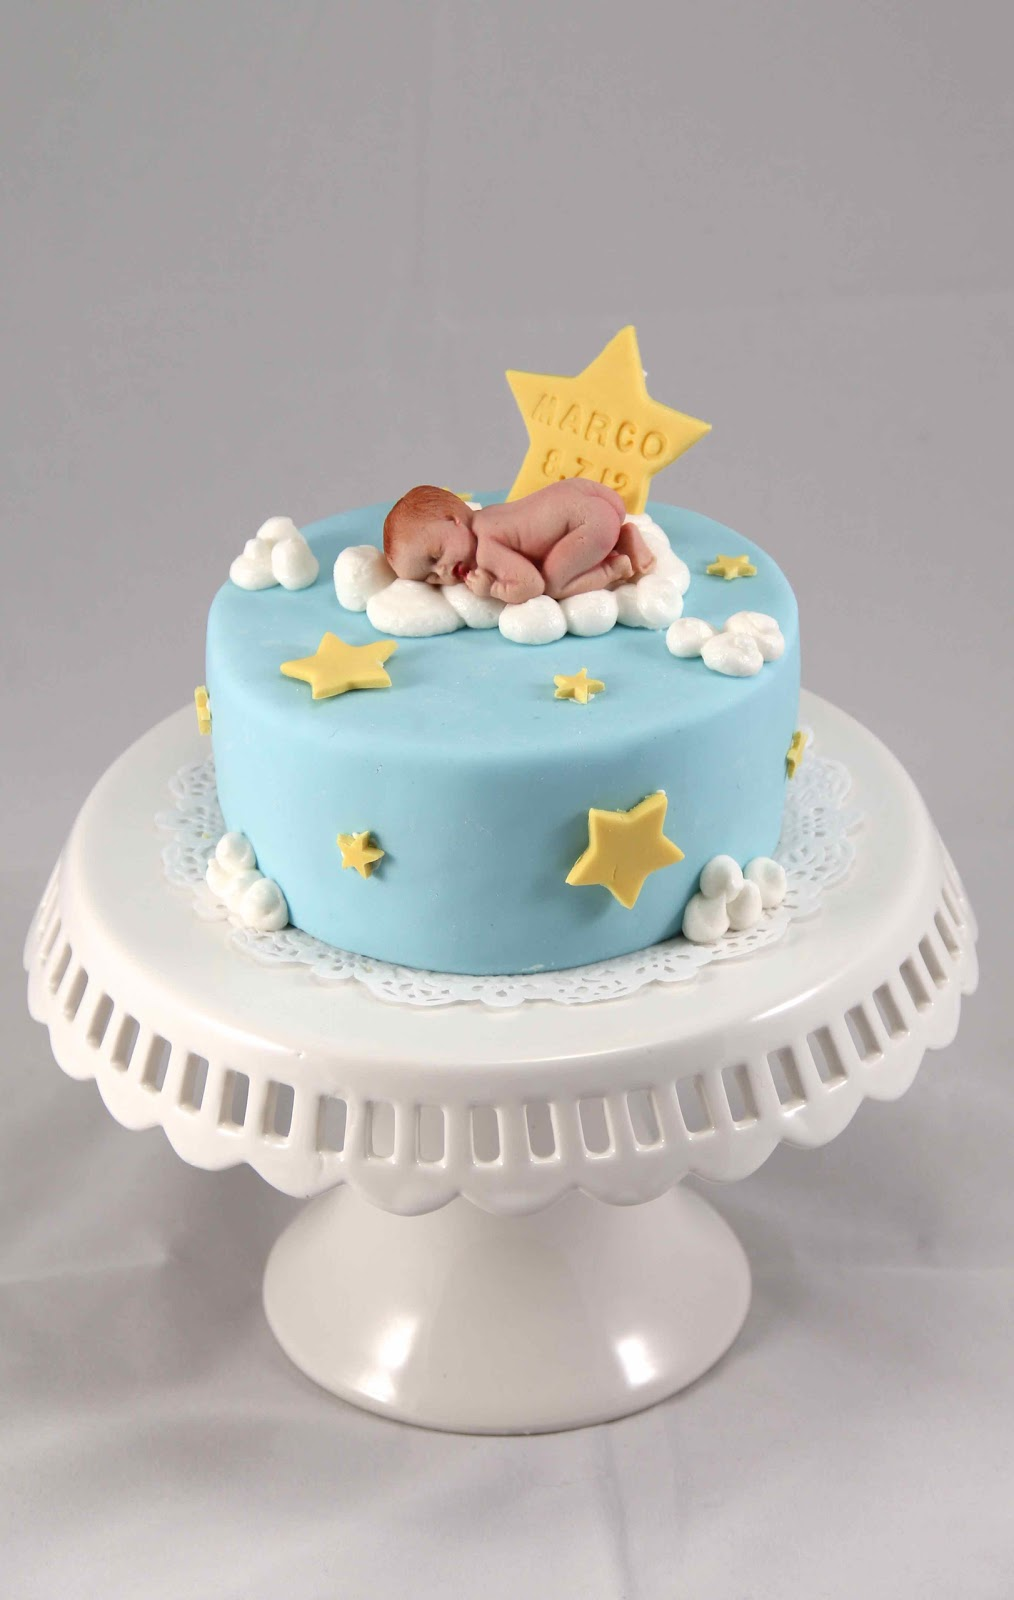 Bakerz Dad: Marco s One Month Old Cakes